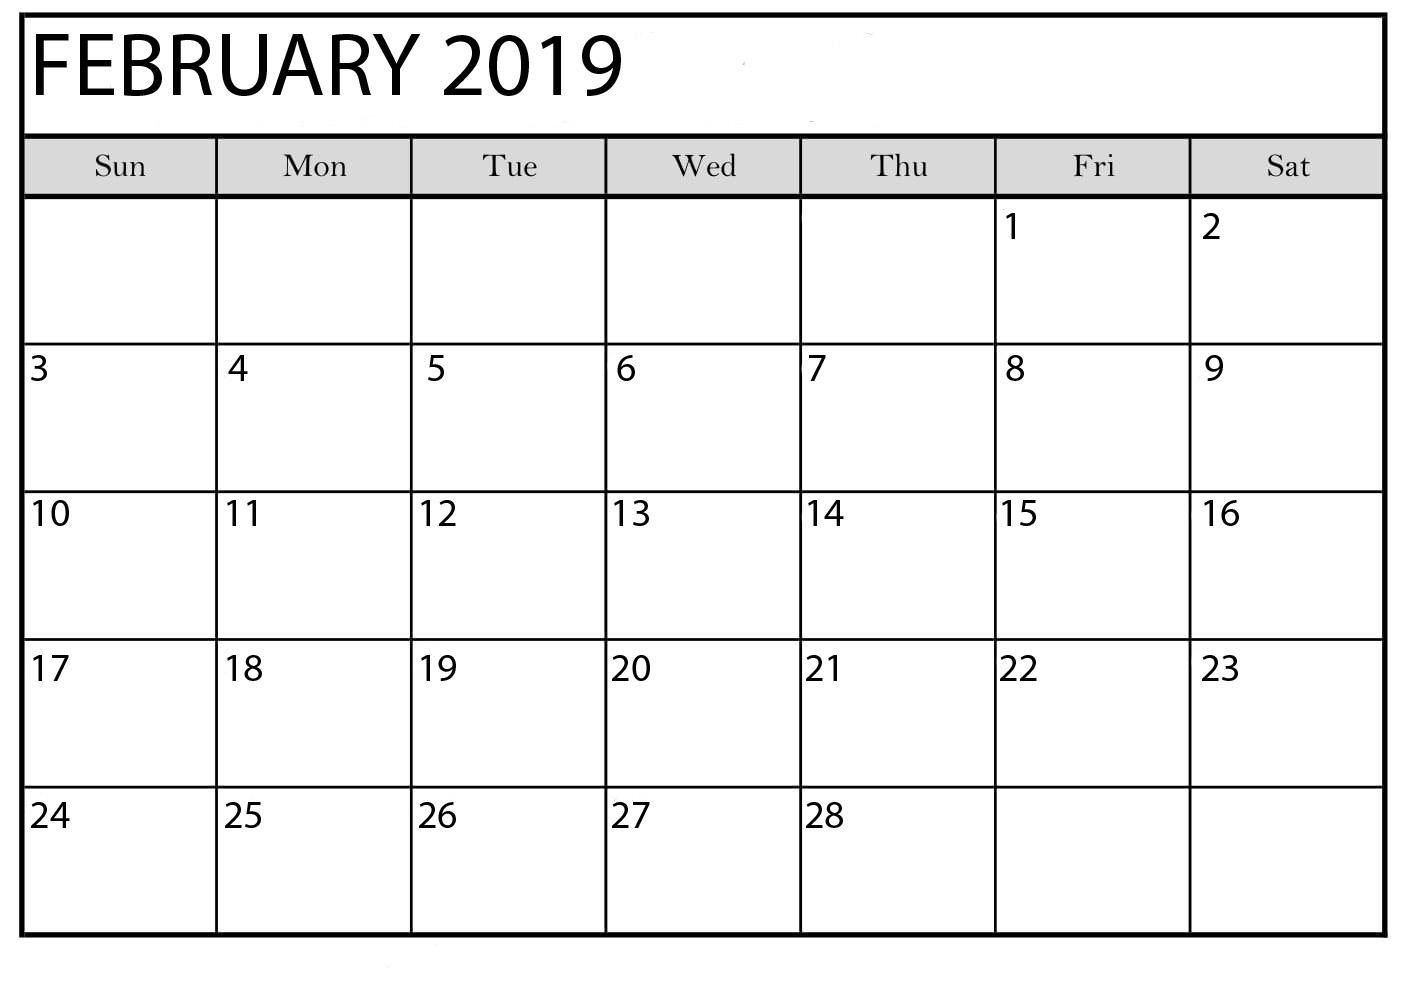 February 2019 Blank Calendar Excel With Notes